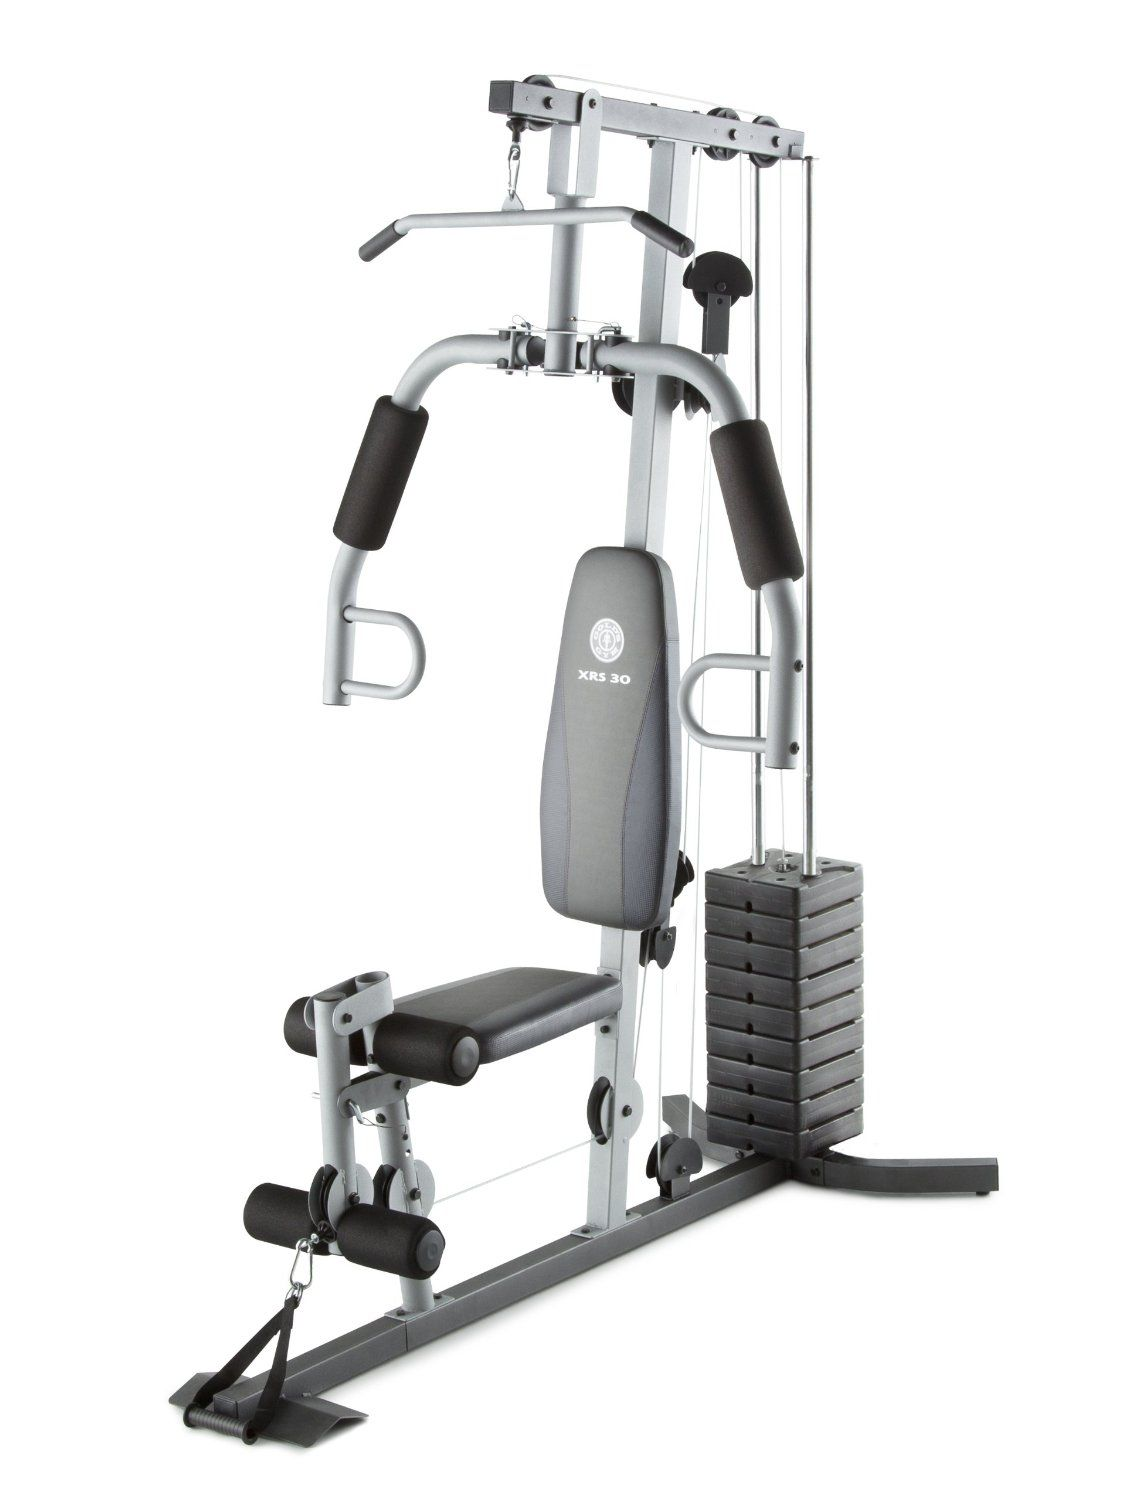 golds gym fitness equipment - HD1128×1500